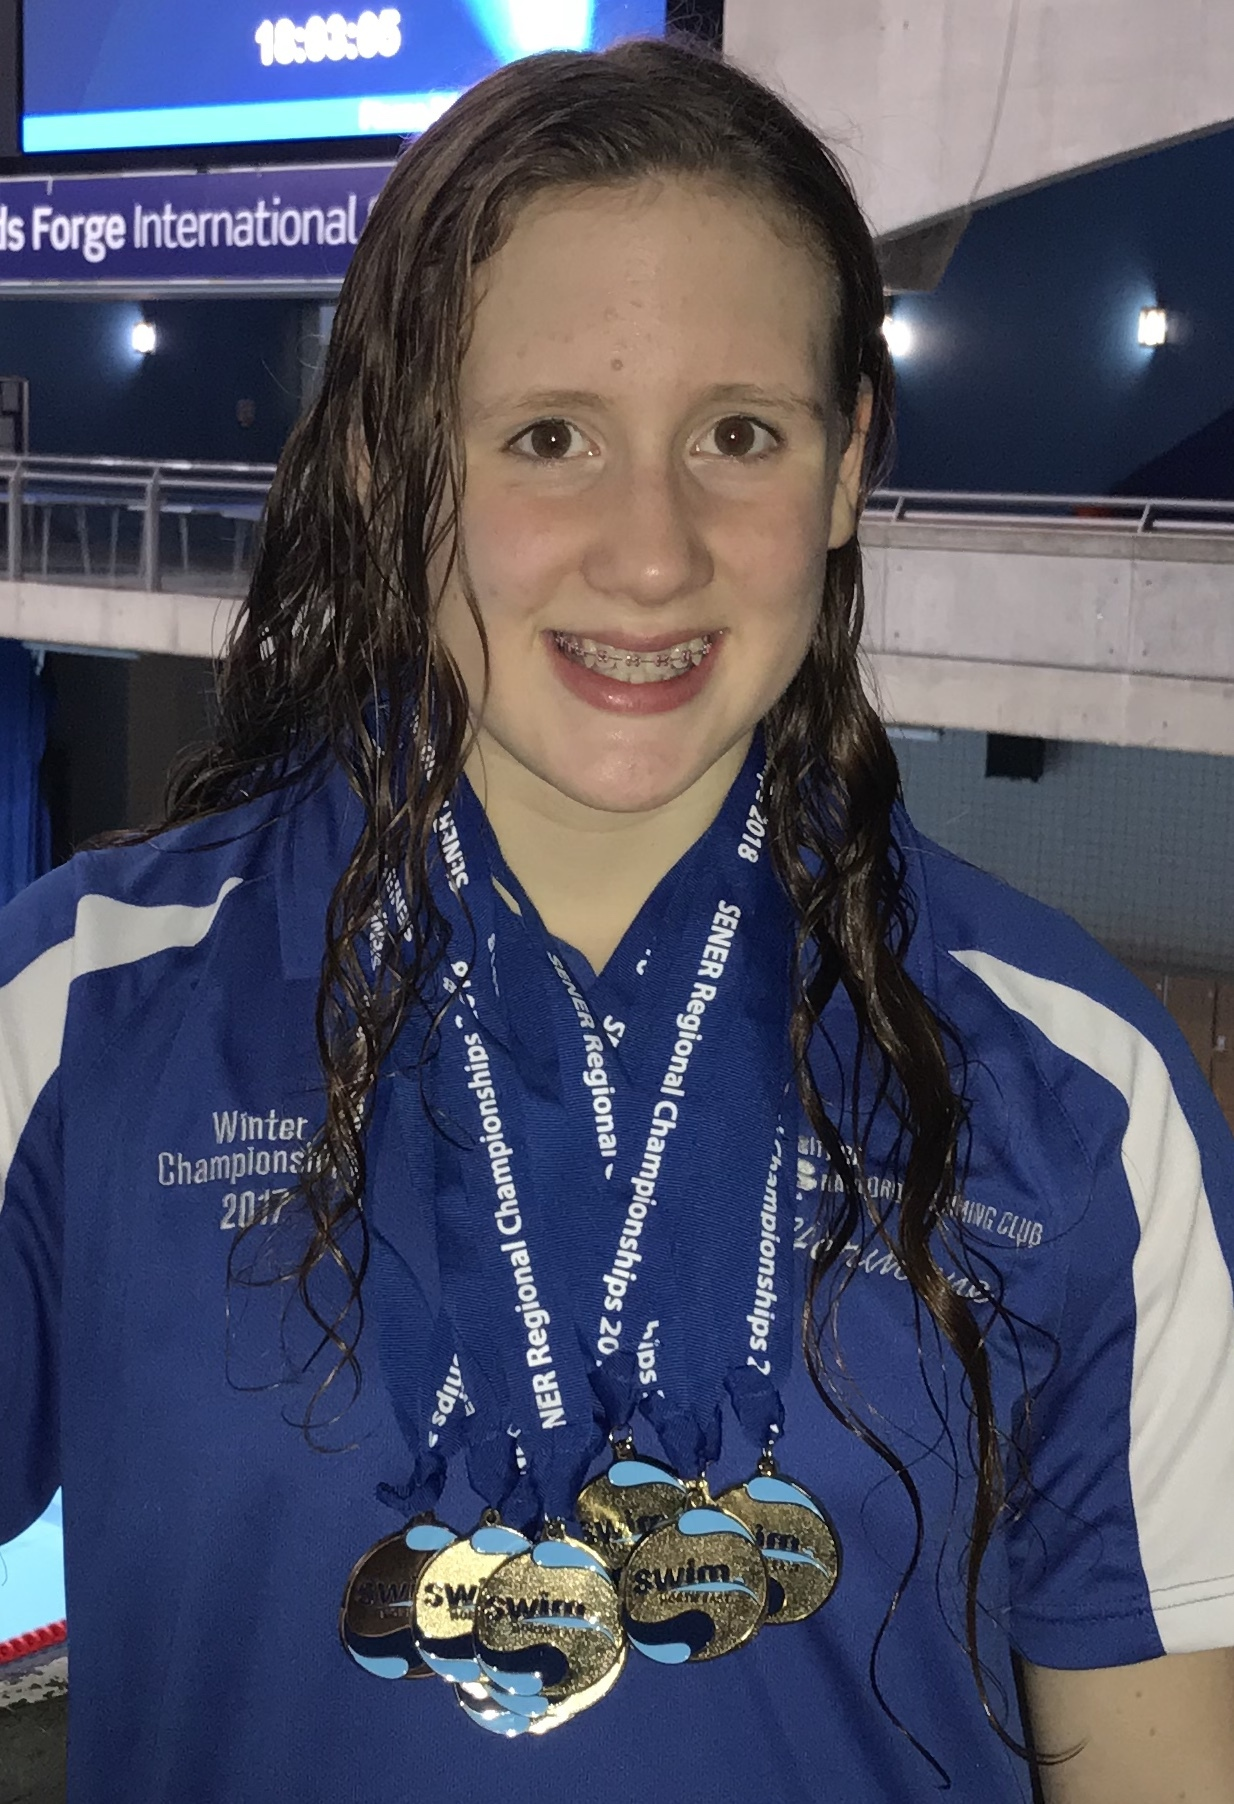 Hermione Roe, 13, of Addingham, collected a number of medals for City of Bradford at the North East Region Age Group Championships held at Ponds Forge, Sheffield